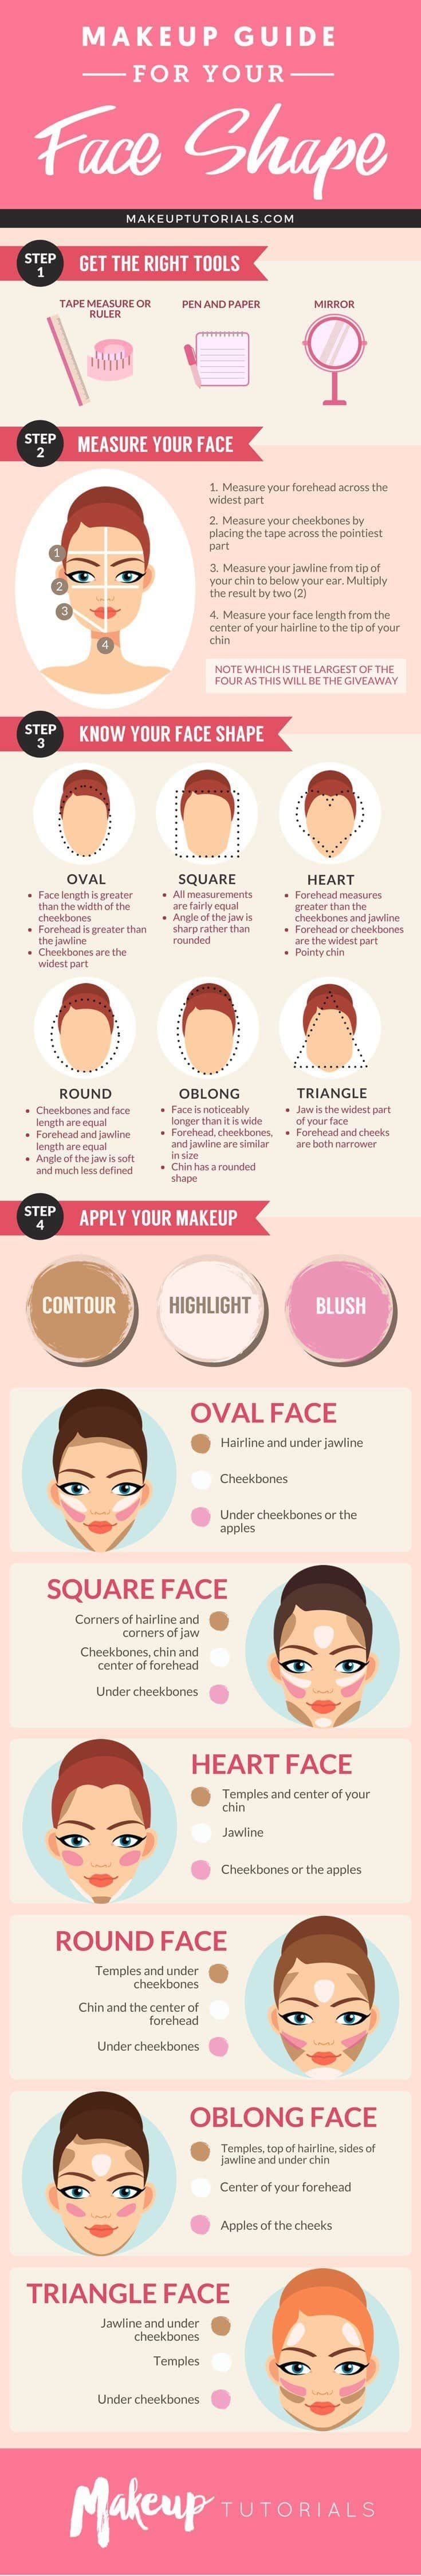 Contouring Techniques By Facial ShapeFacebookGoogle+InstagramPinterestTumblrTwitterYouTube